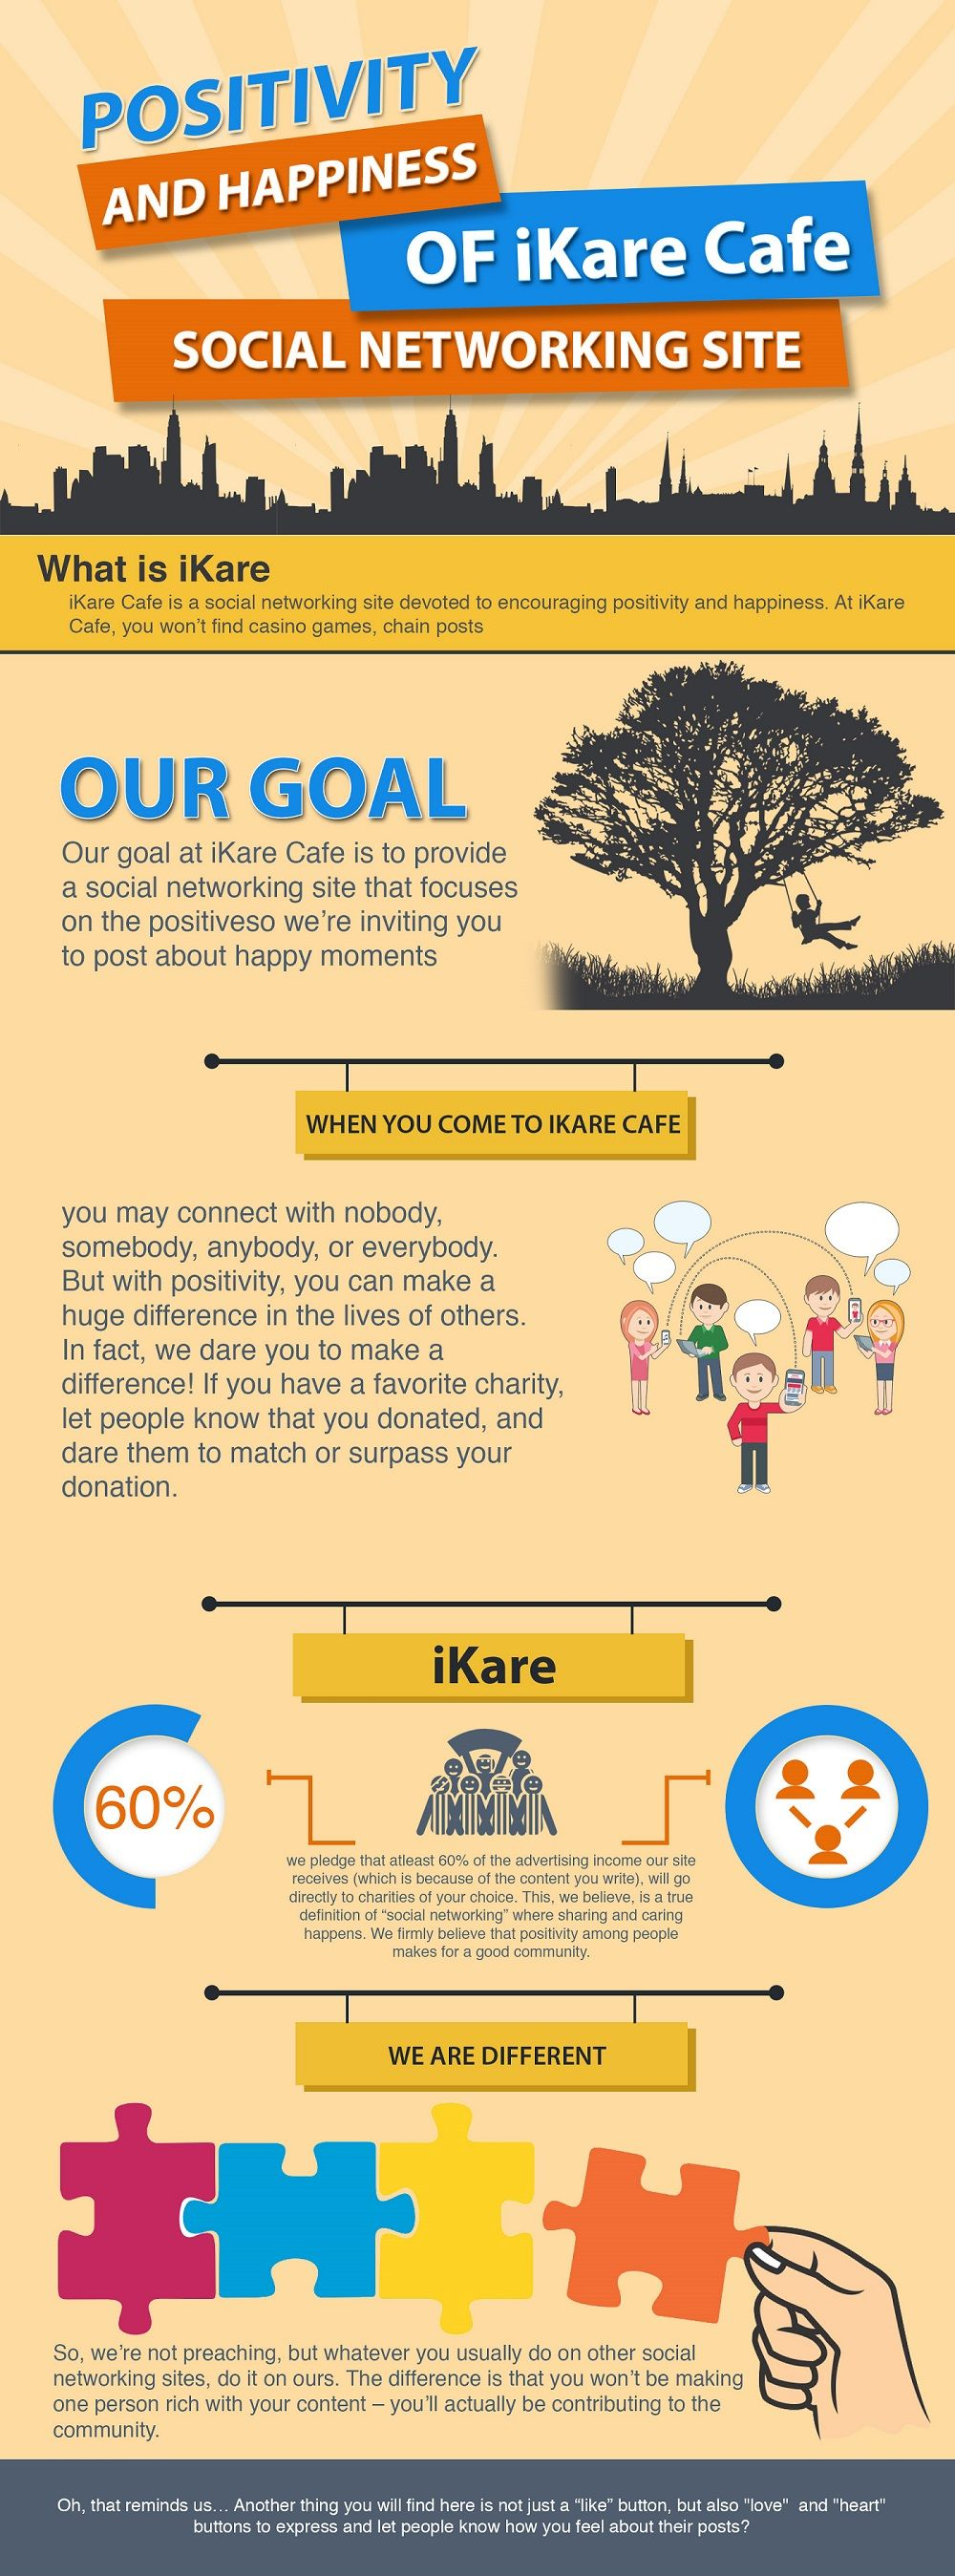 A Positive Social networking Site For A Better and Happy World #infographic